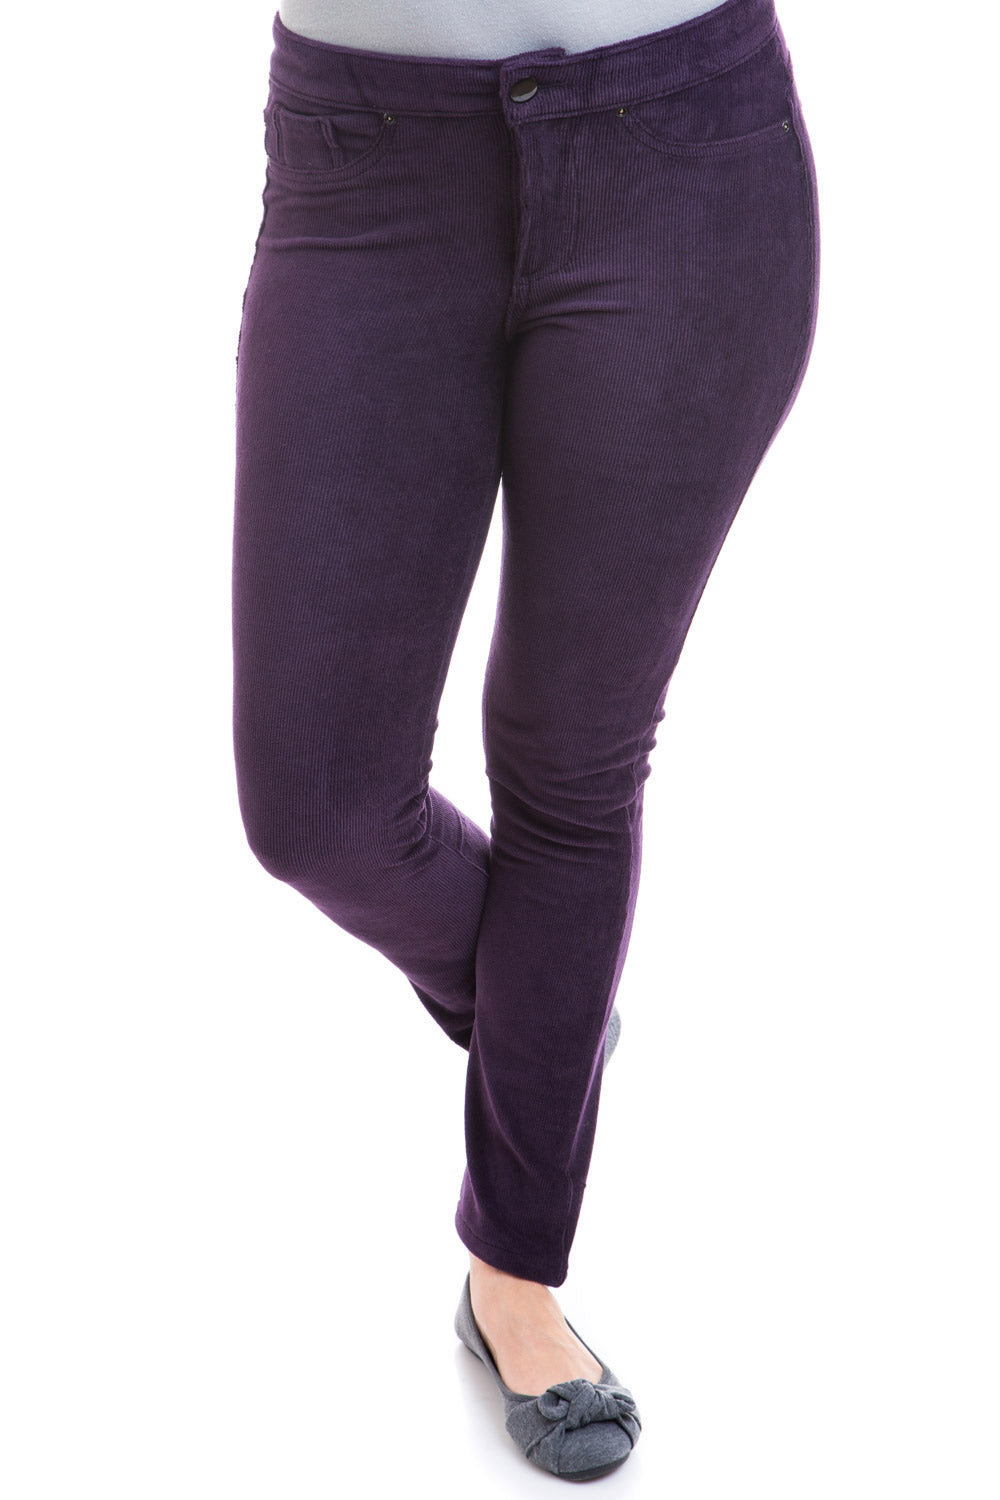 Type 2 Corduroy Jeggings in Plum